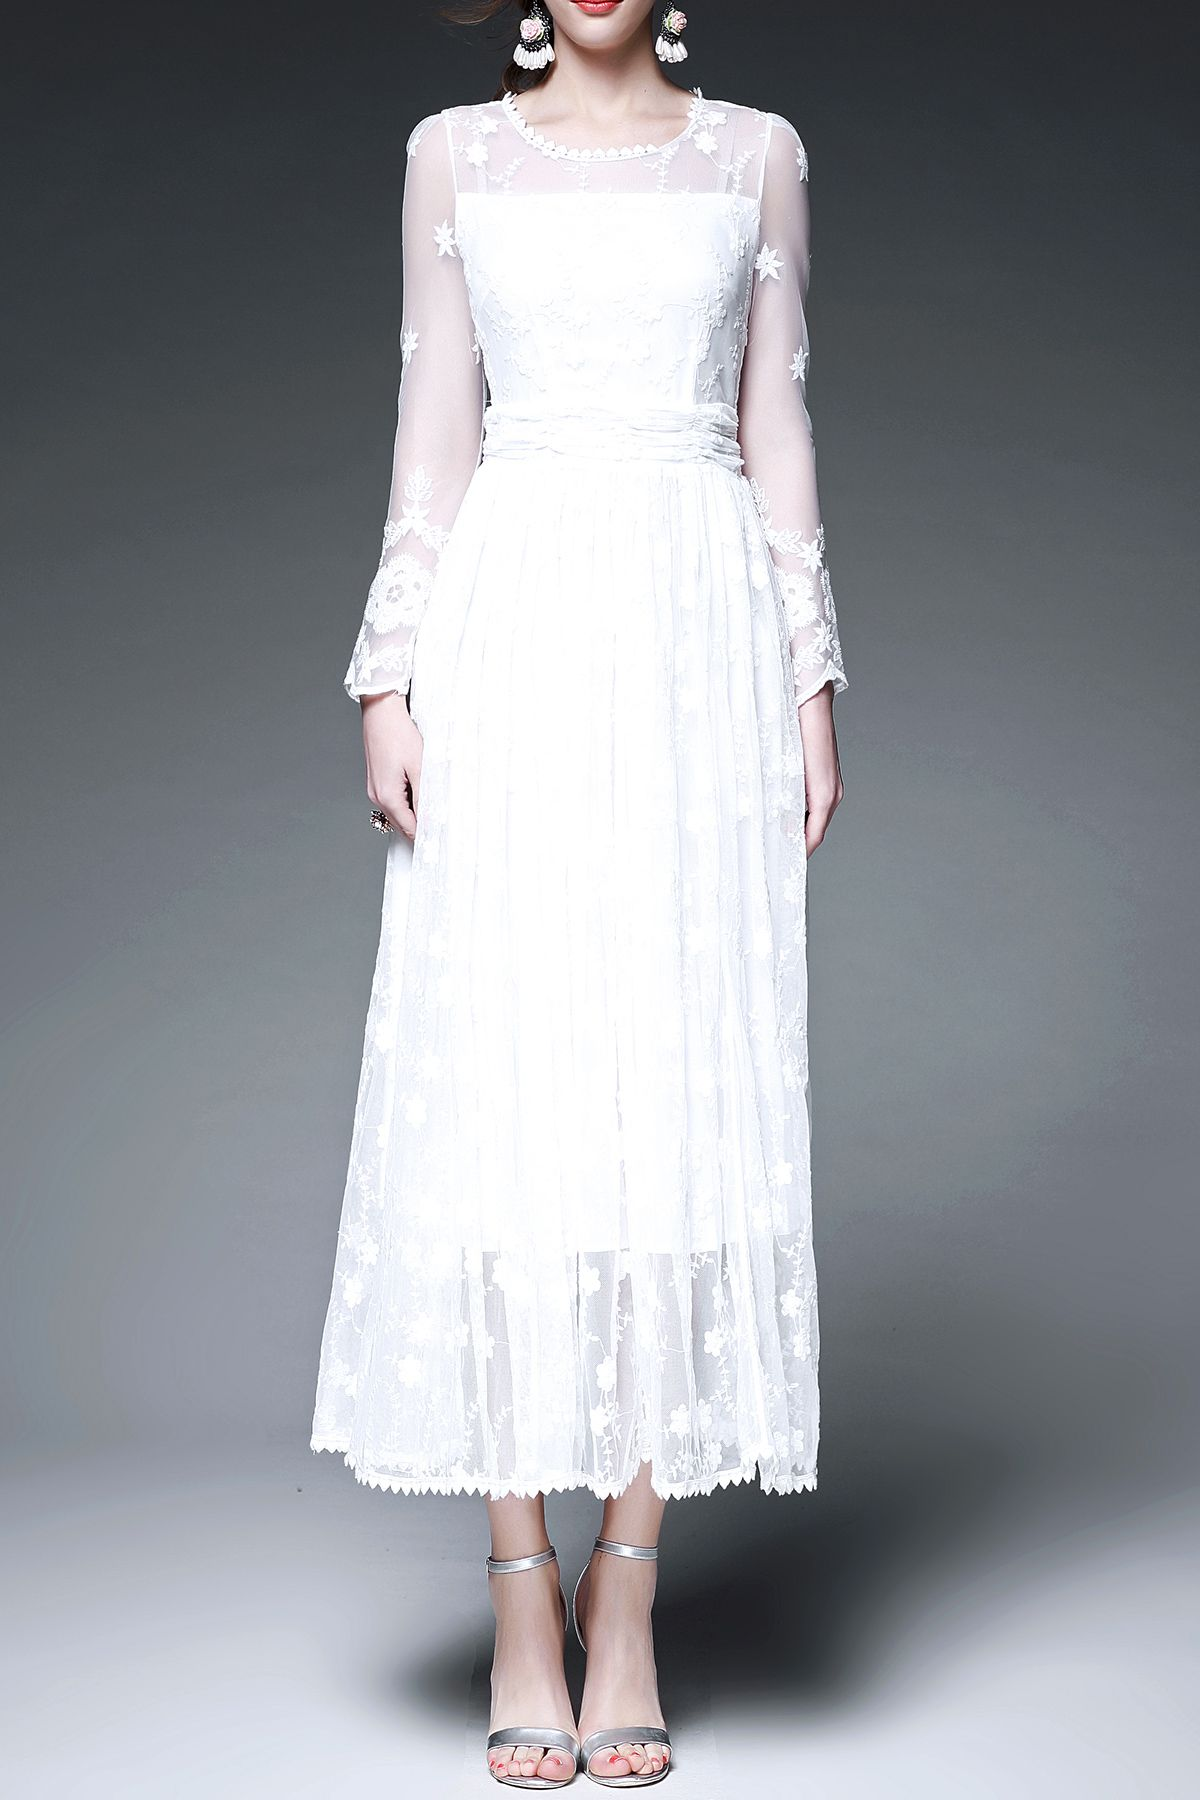 Solid color long sleeve voile spliced dress midi dresses clothes